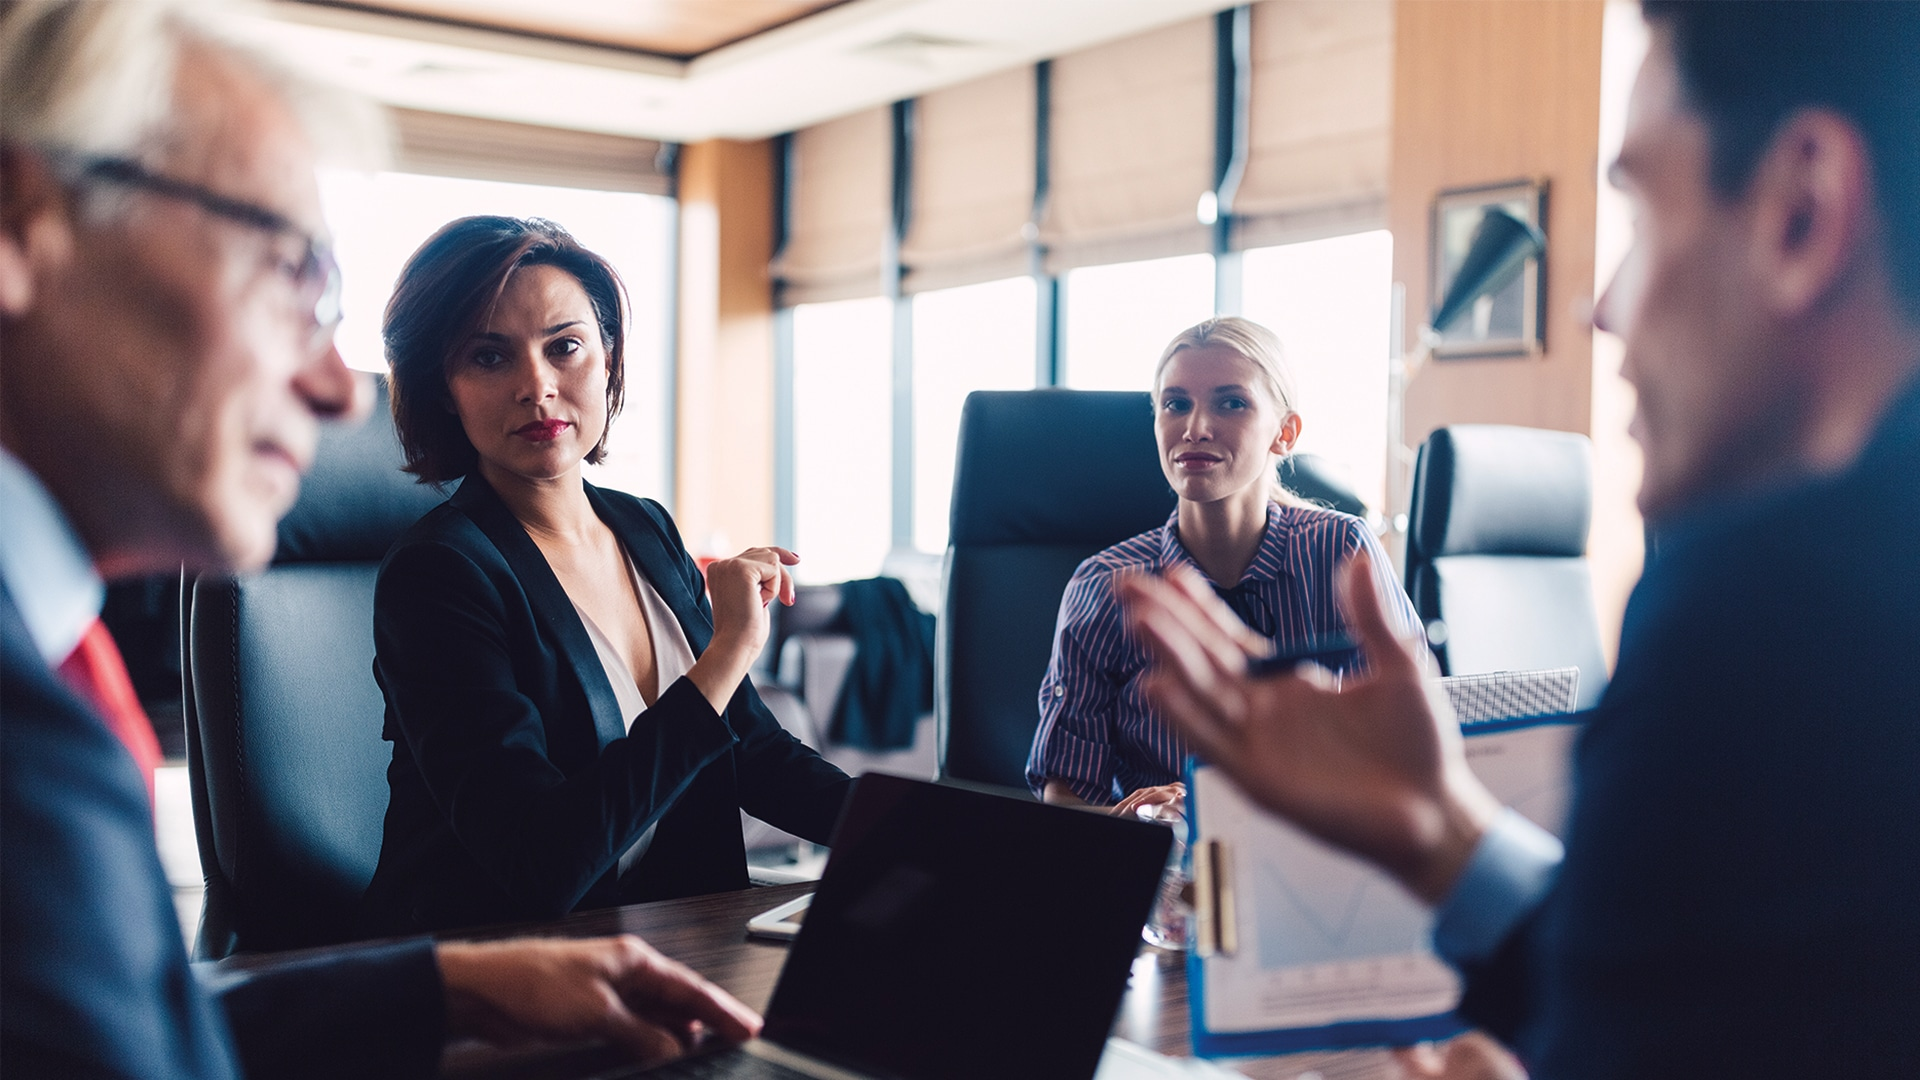 From good to great: The evolving role of the chair Ethical Boardroom